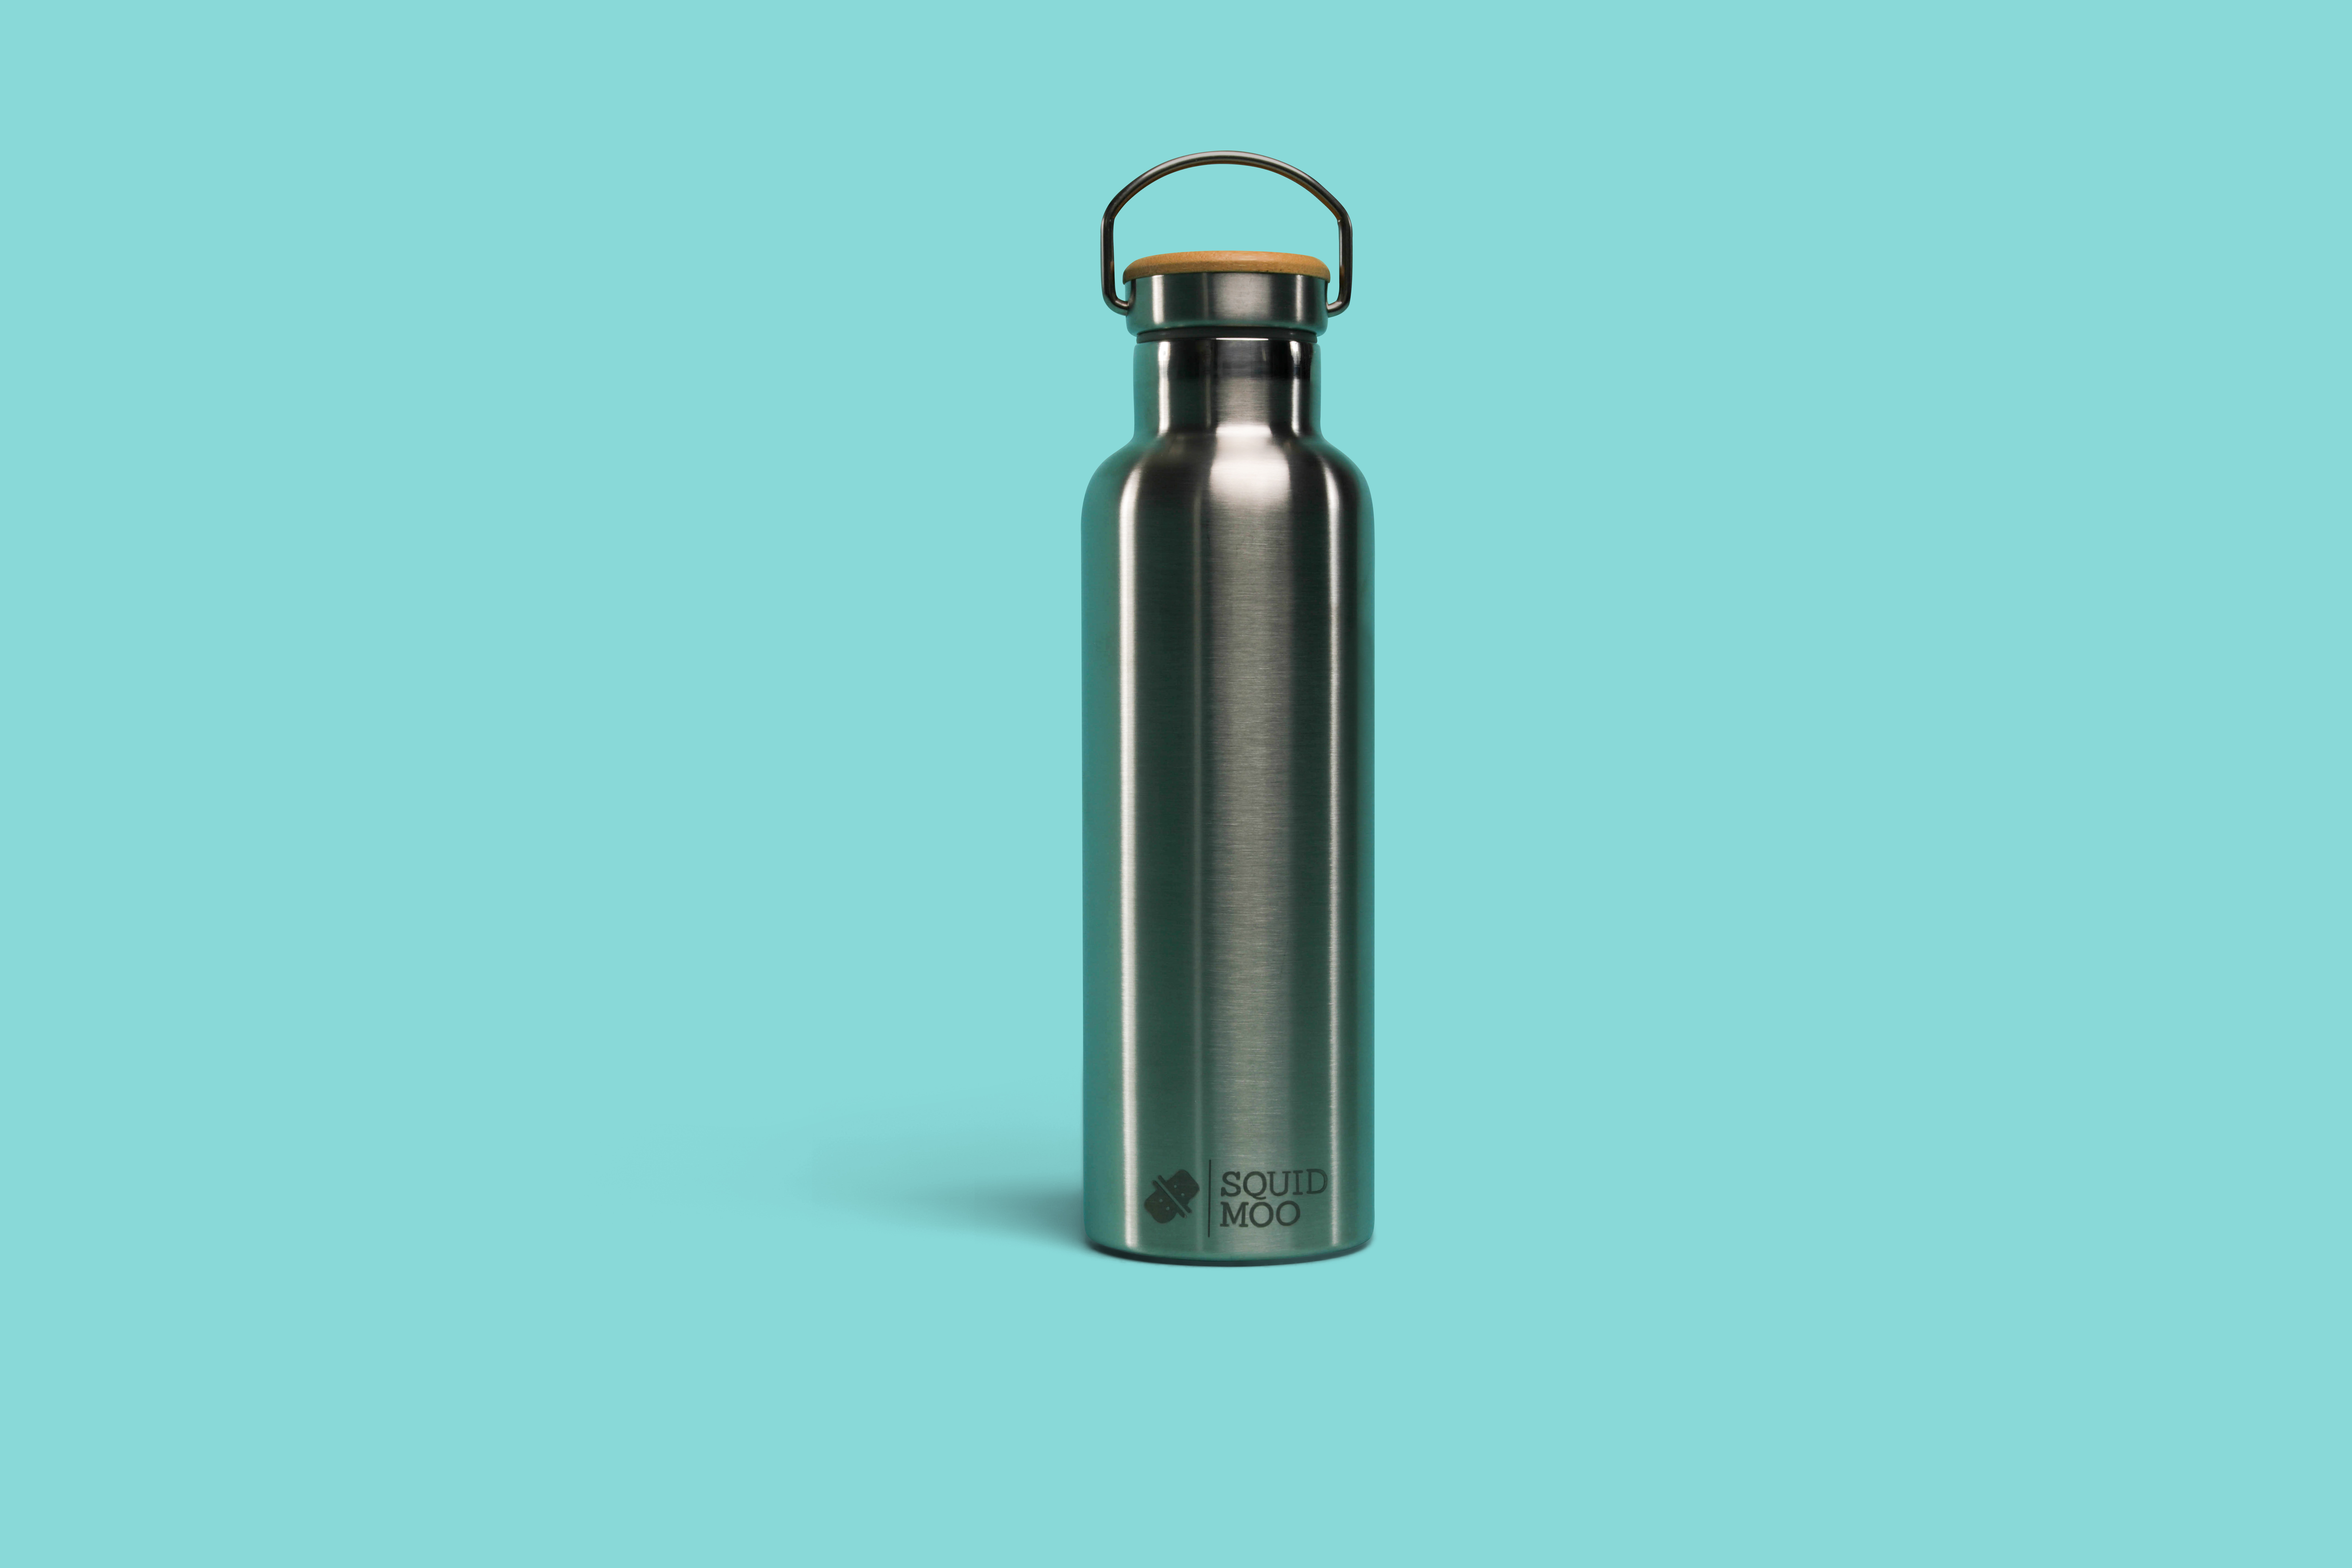 Lima Bottle by Squidmoo